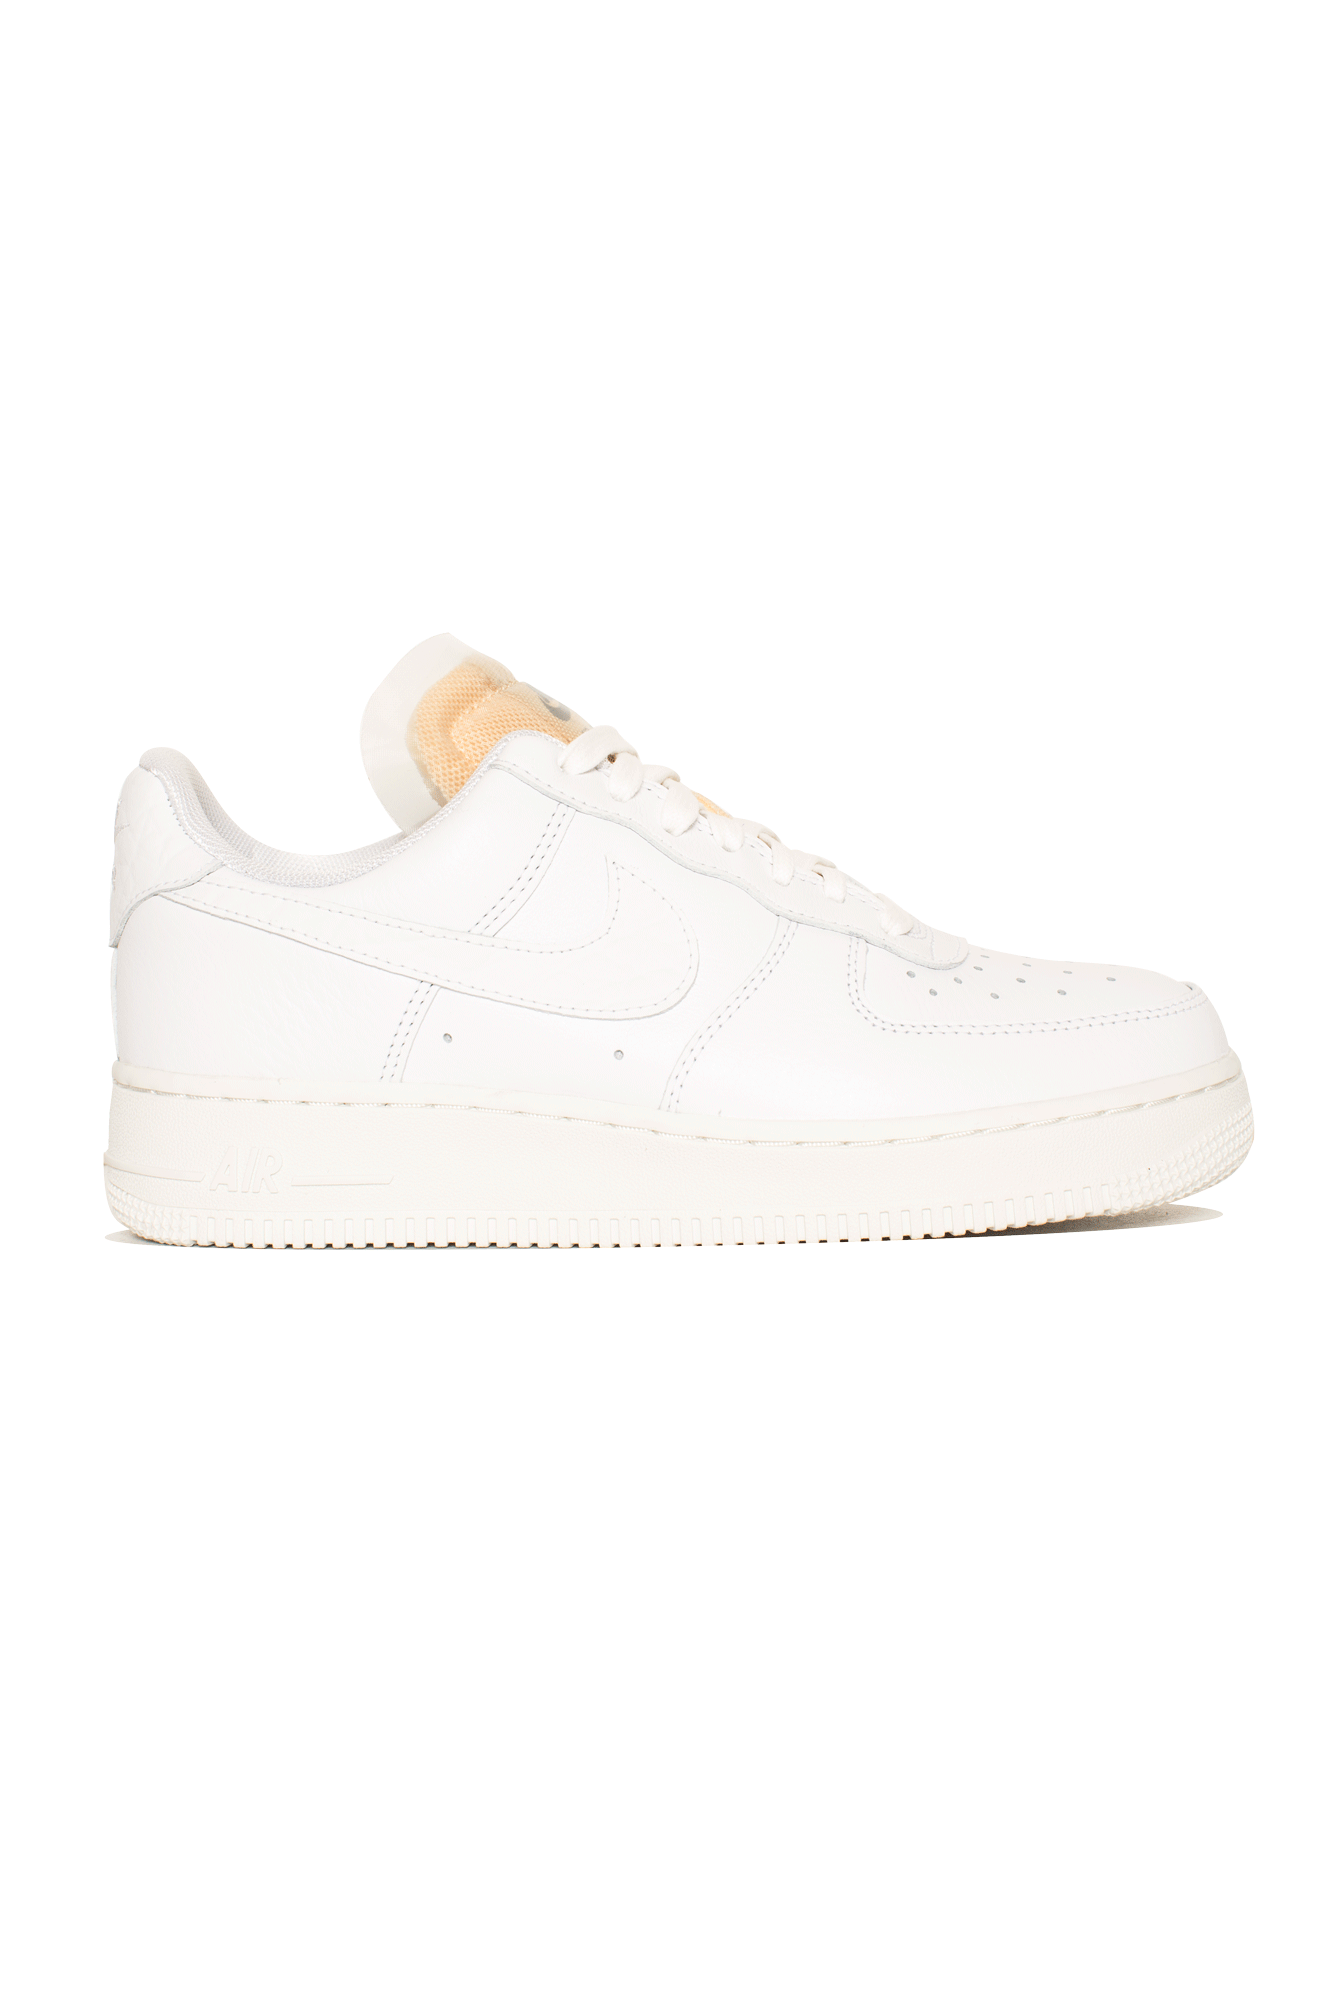 Nike Sneakers Wmns Air Force 1 '07 LX Bianco CZ8101-#000#100#6 - One Block Down